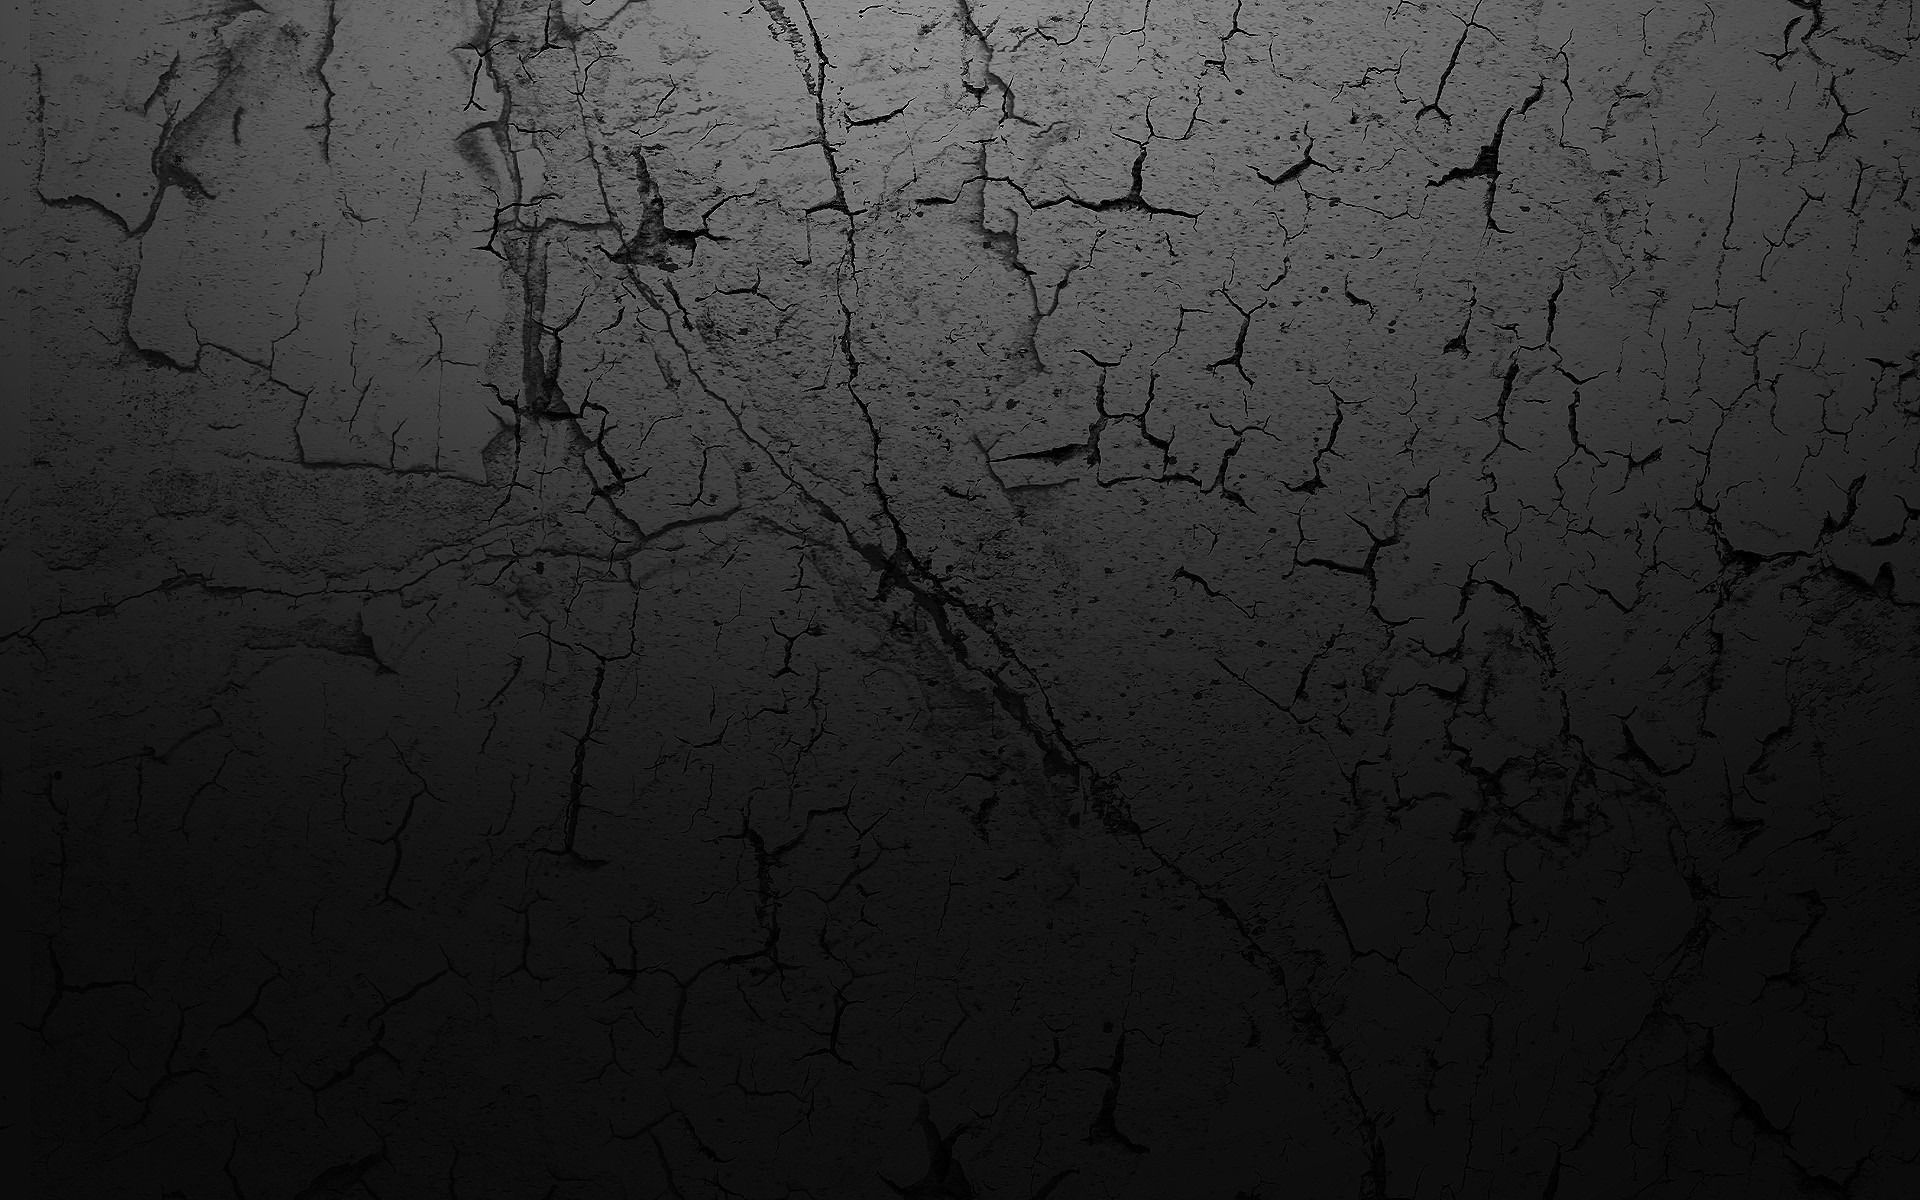 jagodunya-texture-wall-cracks-creative-background-wallpaper.jpg ...